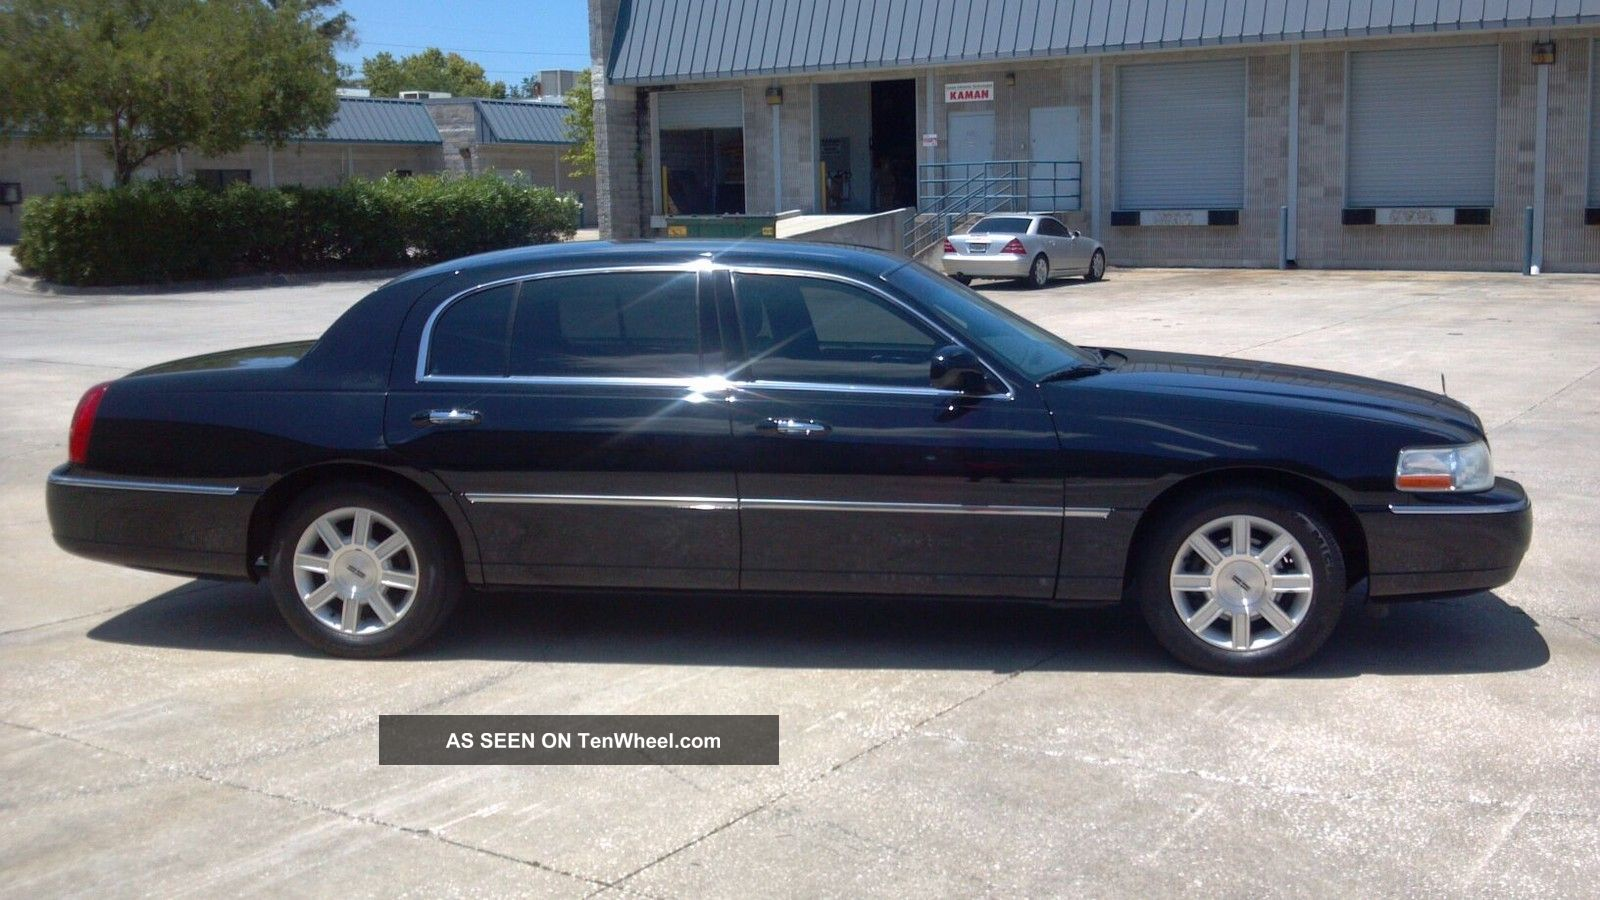 2007 lincoln town car blue 200 interior and exterior images. Black Bedroom Furniture Sets. Home Design Ideas